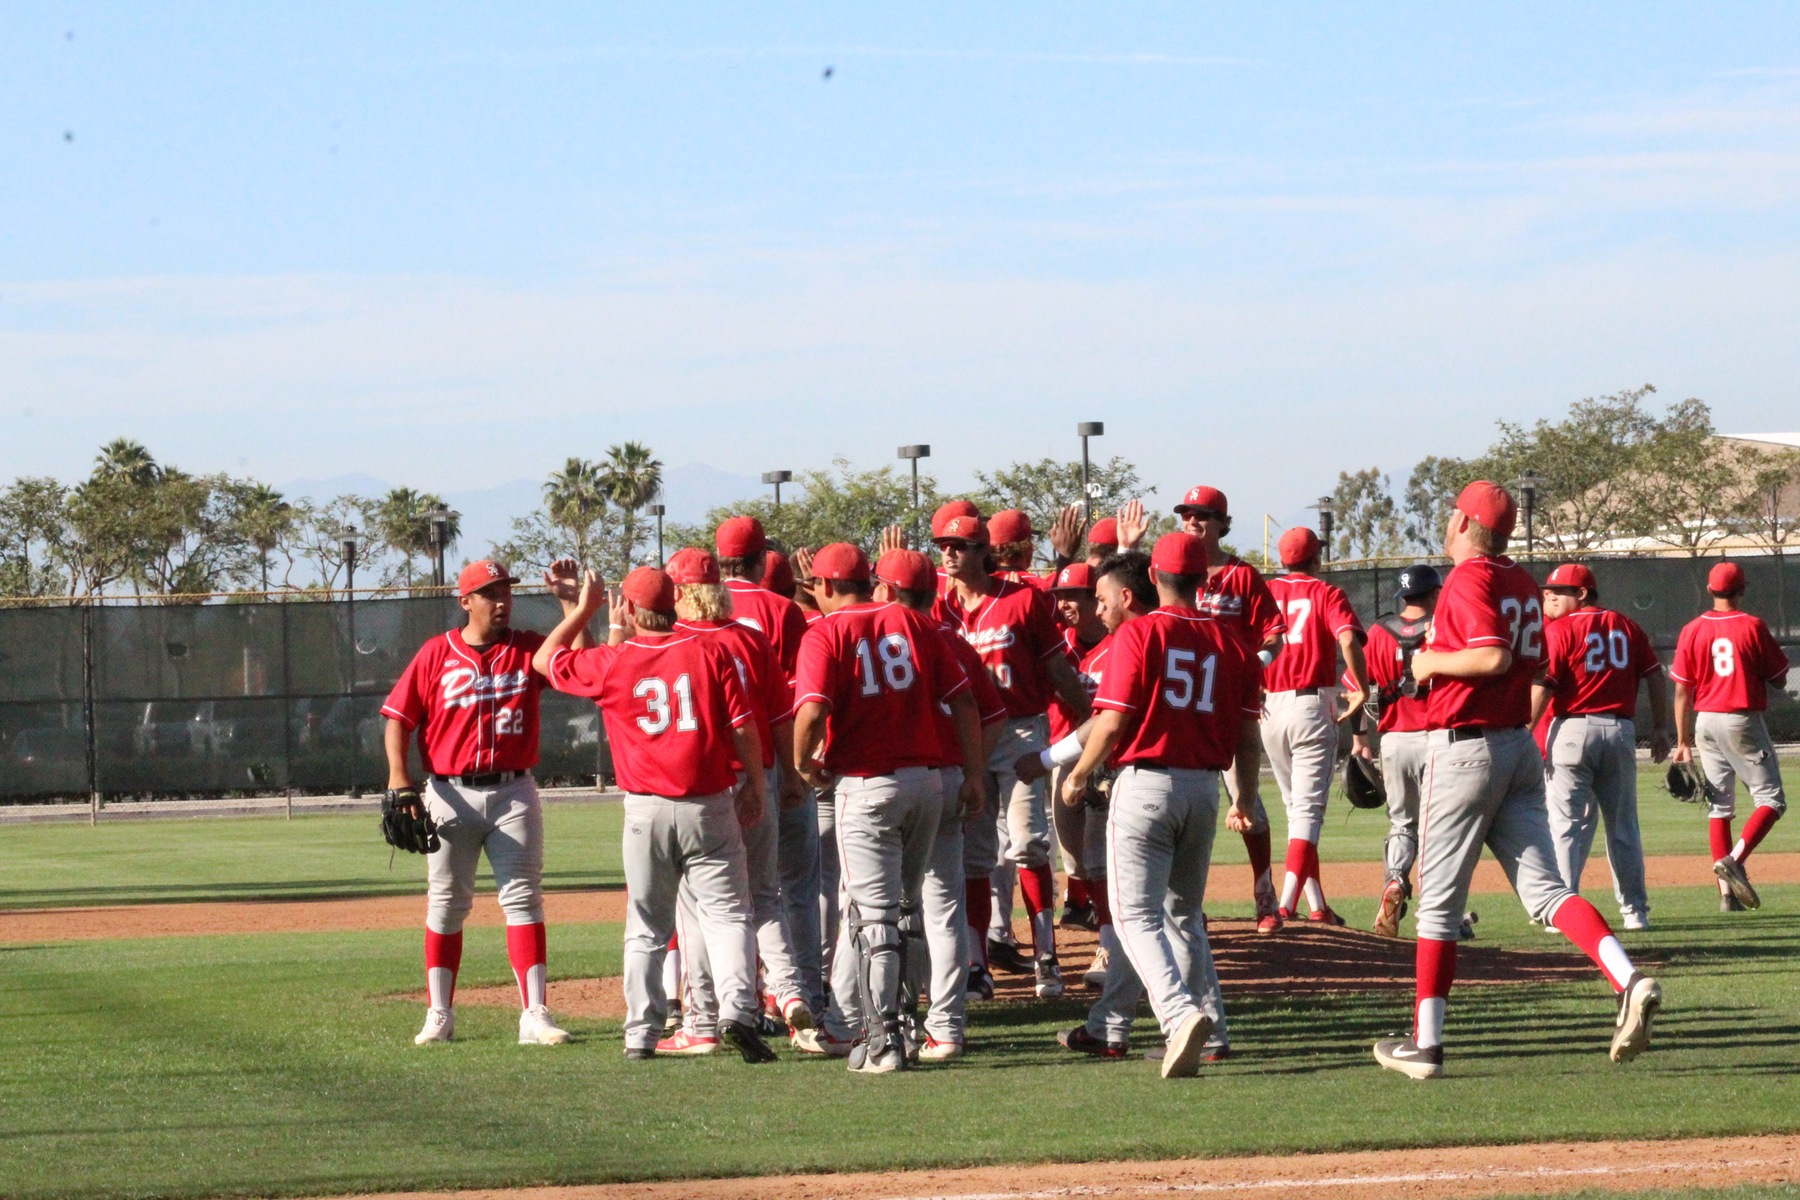 Dons Baseball Grabs No. 9 Seed, Play at Mt. SAC for CCCAA SoCal Regionals